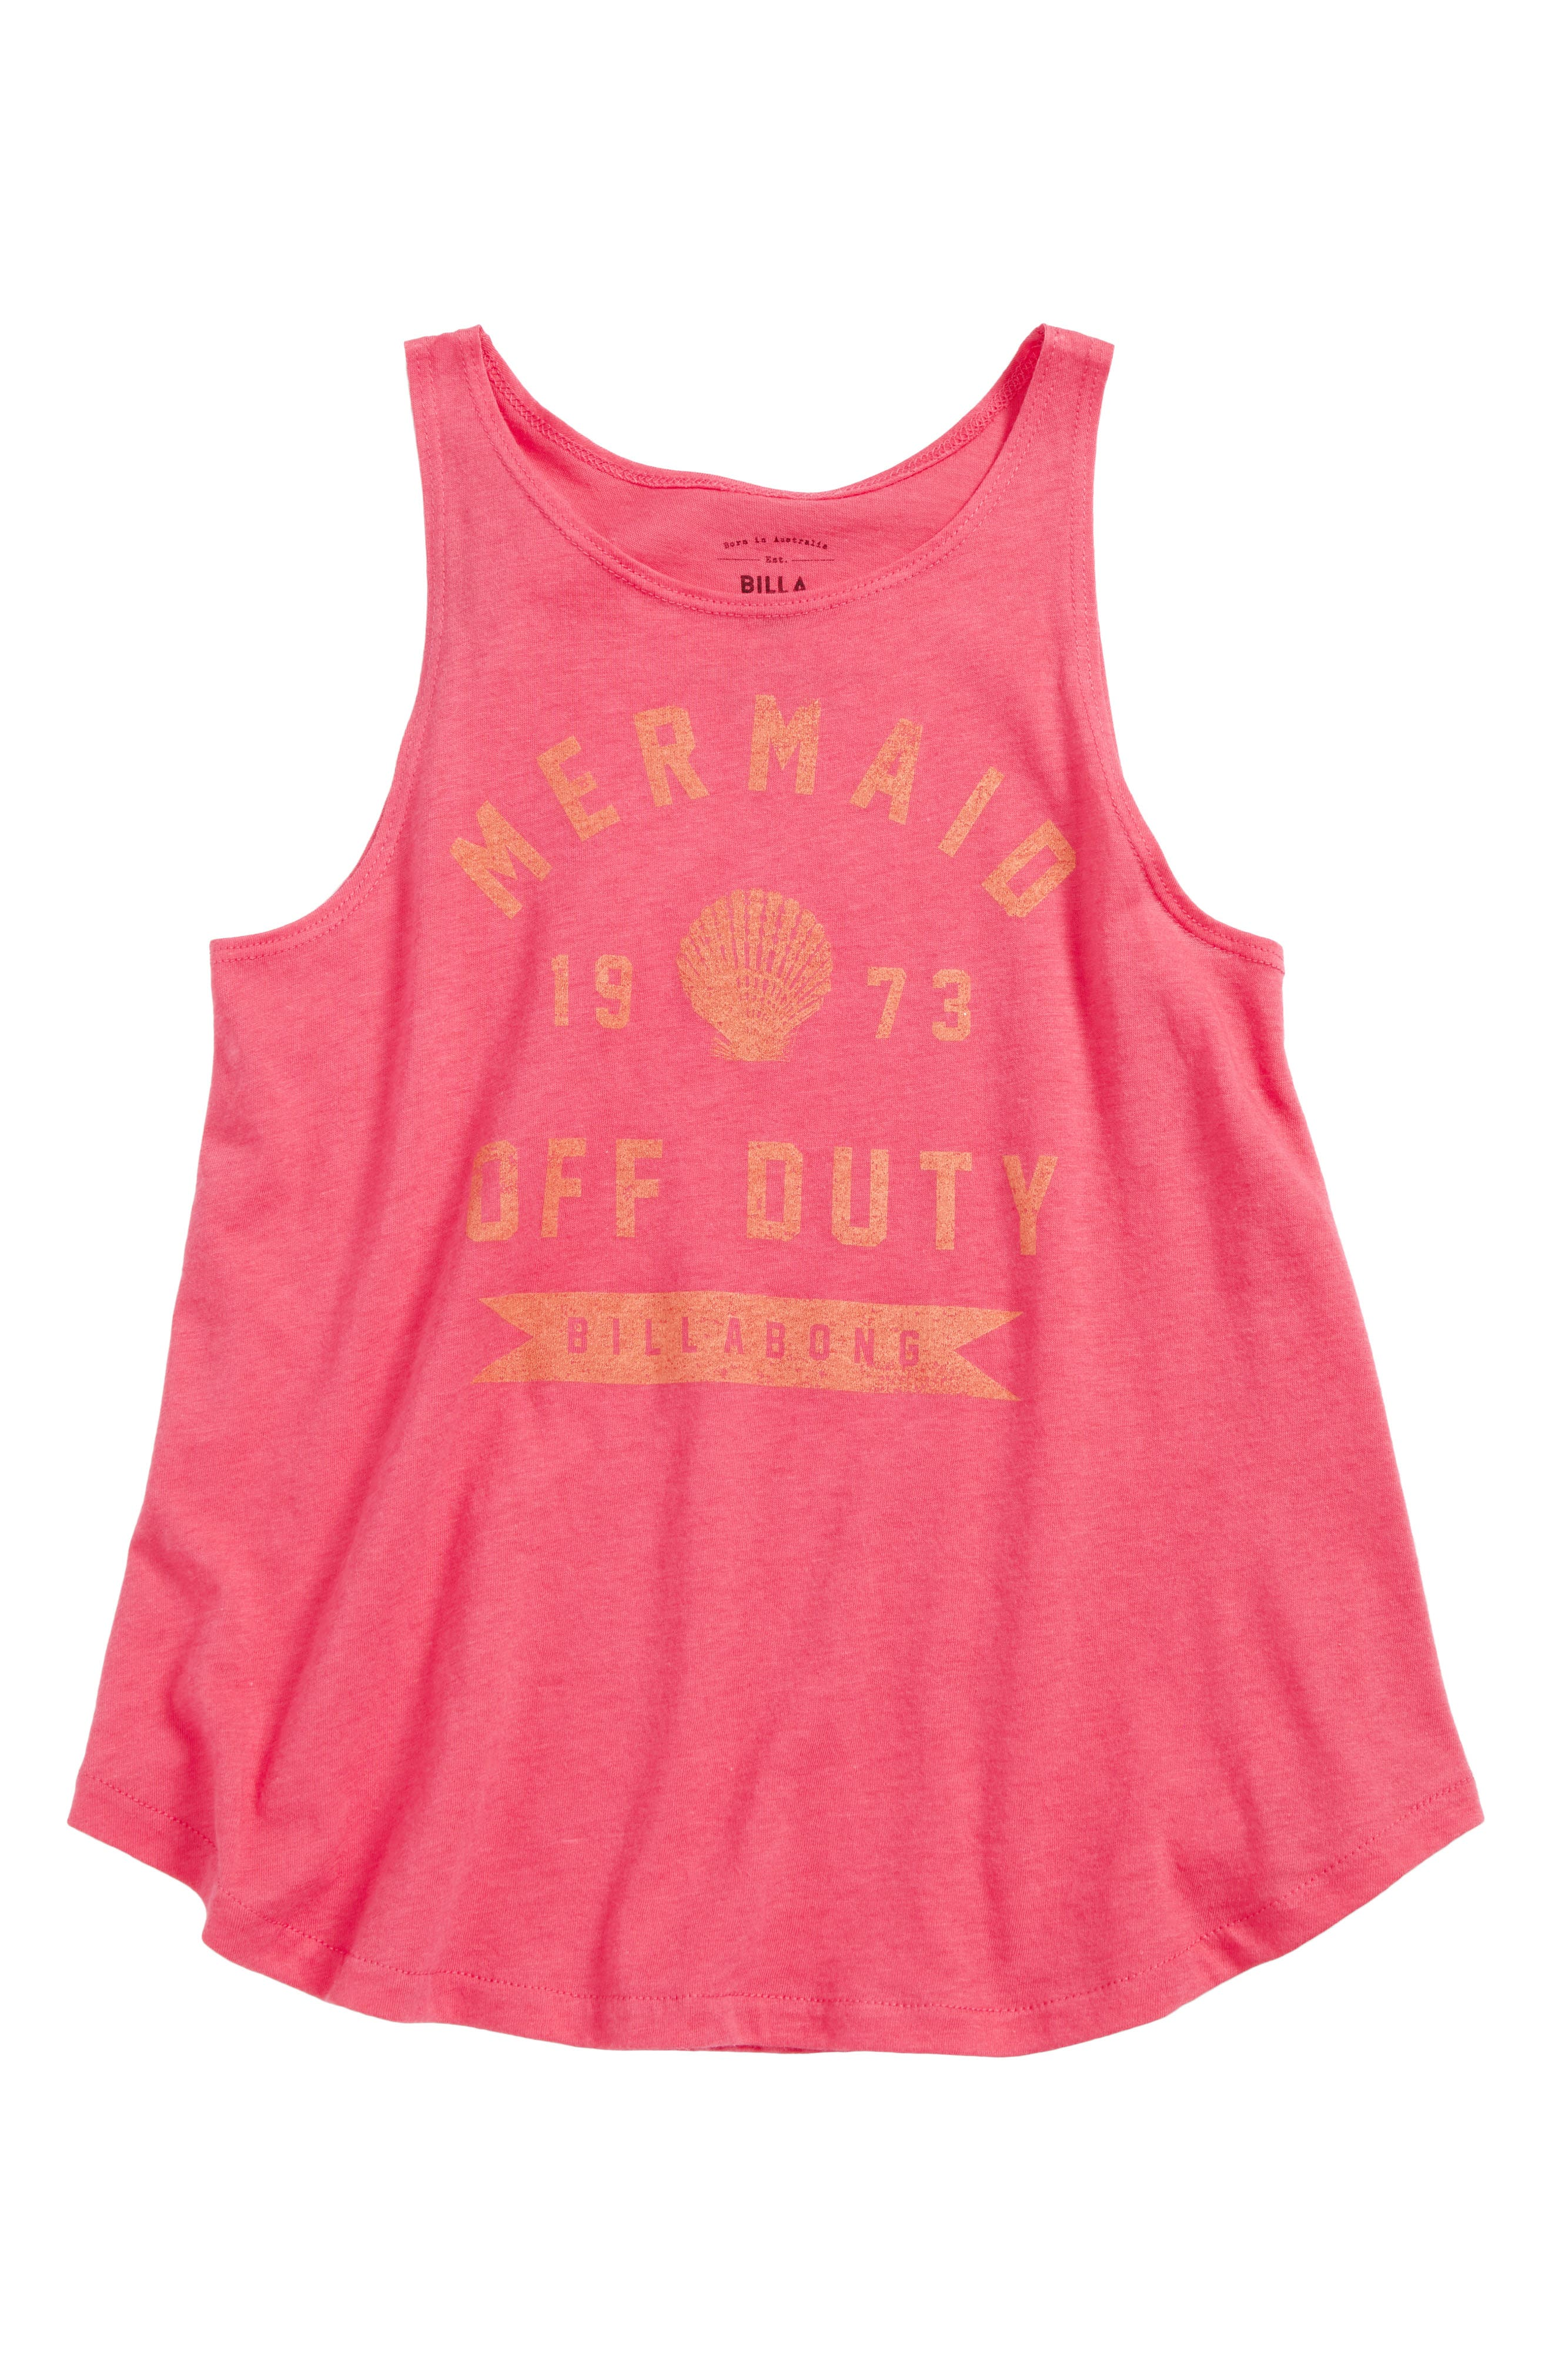 Main Image - Billabong Off Duty Mermaid Graphic Tank (Little Girls & Big Girls)